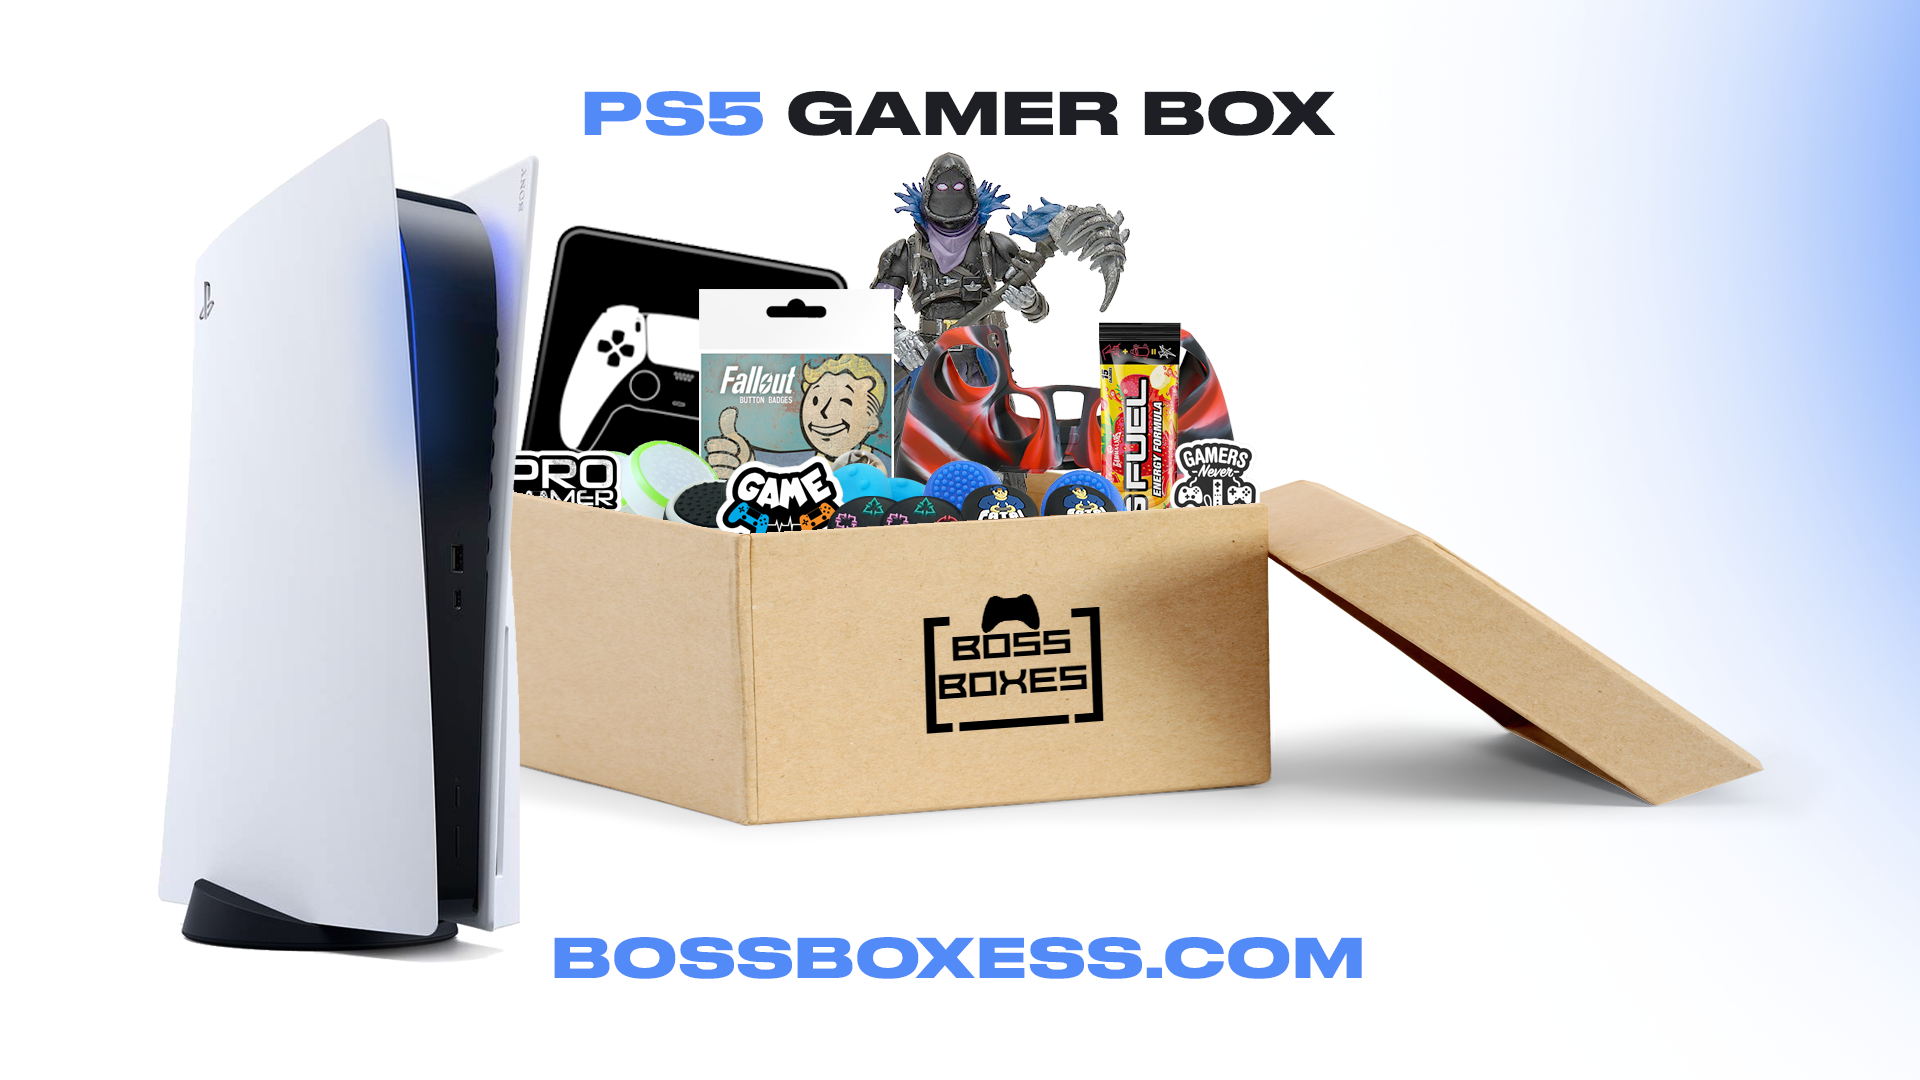 PS5 Gamer Box